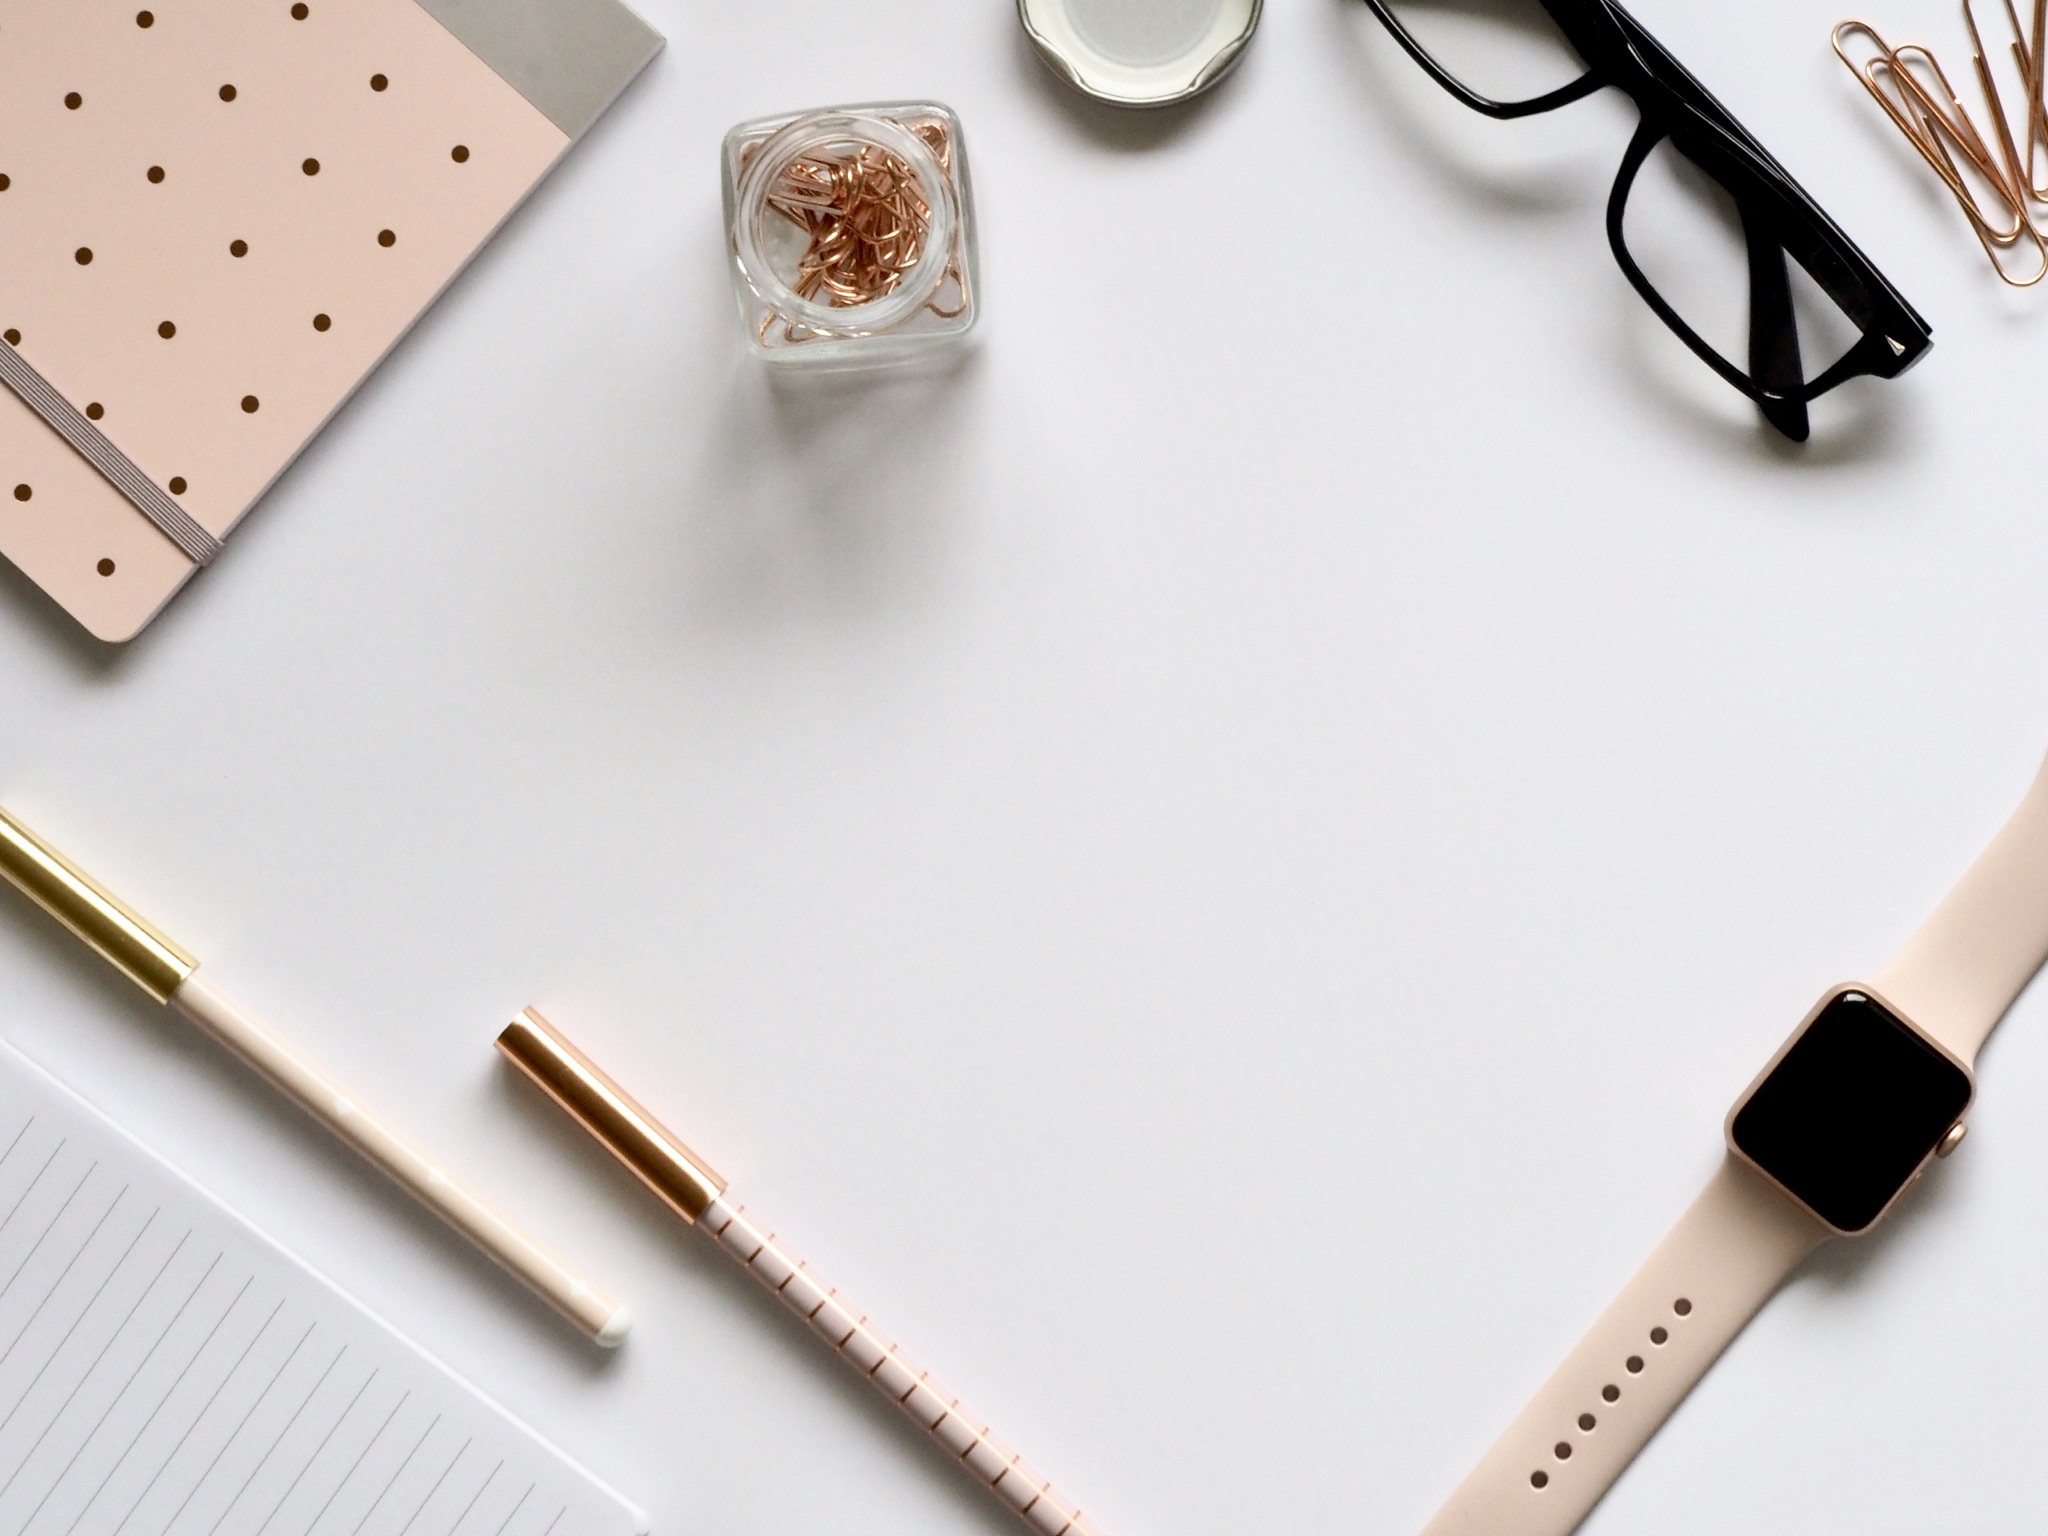 Information Hub - A collection of tools, templates, resources and information to help you create a successful business with effective, engaging and inspiring content that teaches.